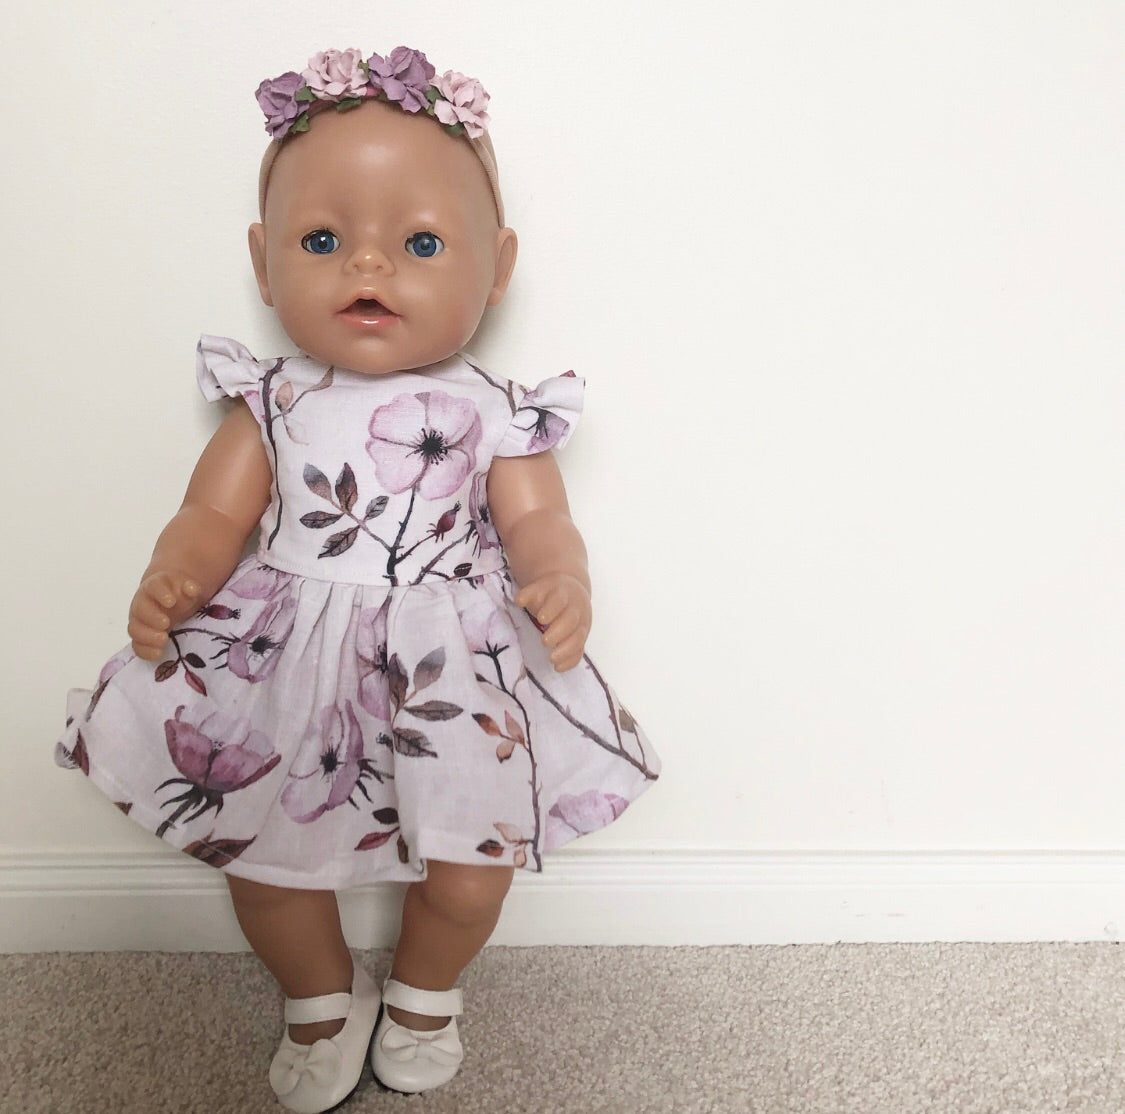 Made to order // Eadie Dress: Baby Born 43cm (Available in multiple different fabrics)